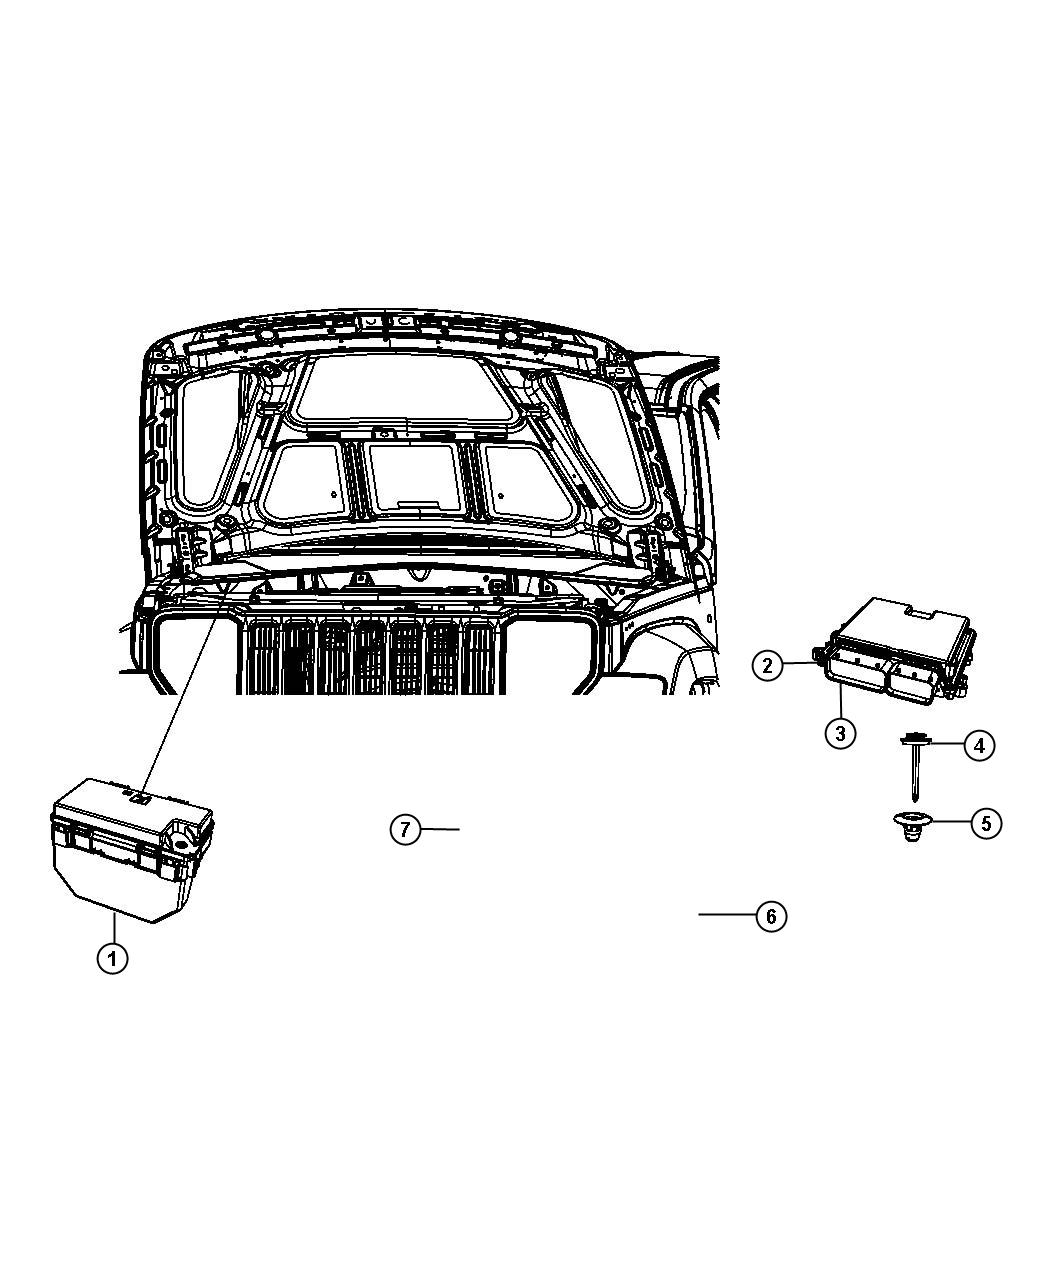 2008 Jeep Liberty Module. Totally integrated power